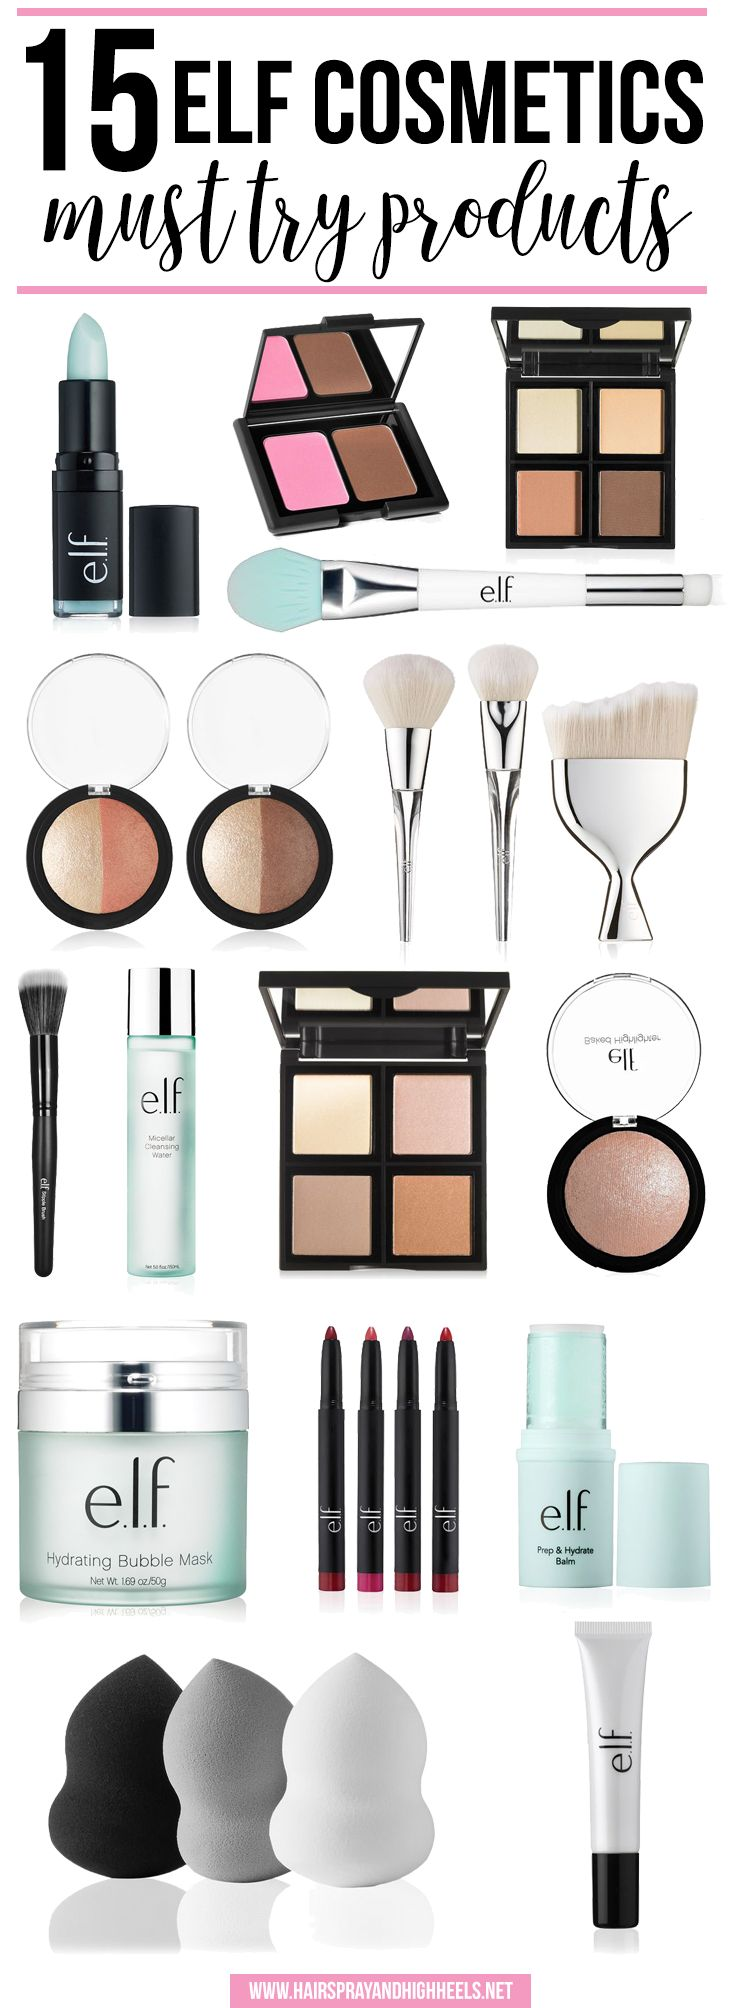 15 Elf Cosmetics Must Try Products! Elf is an affordable brand, with awesome pro...